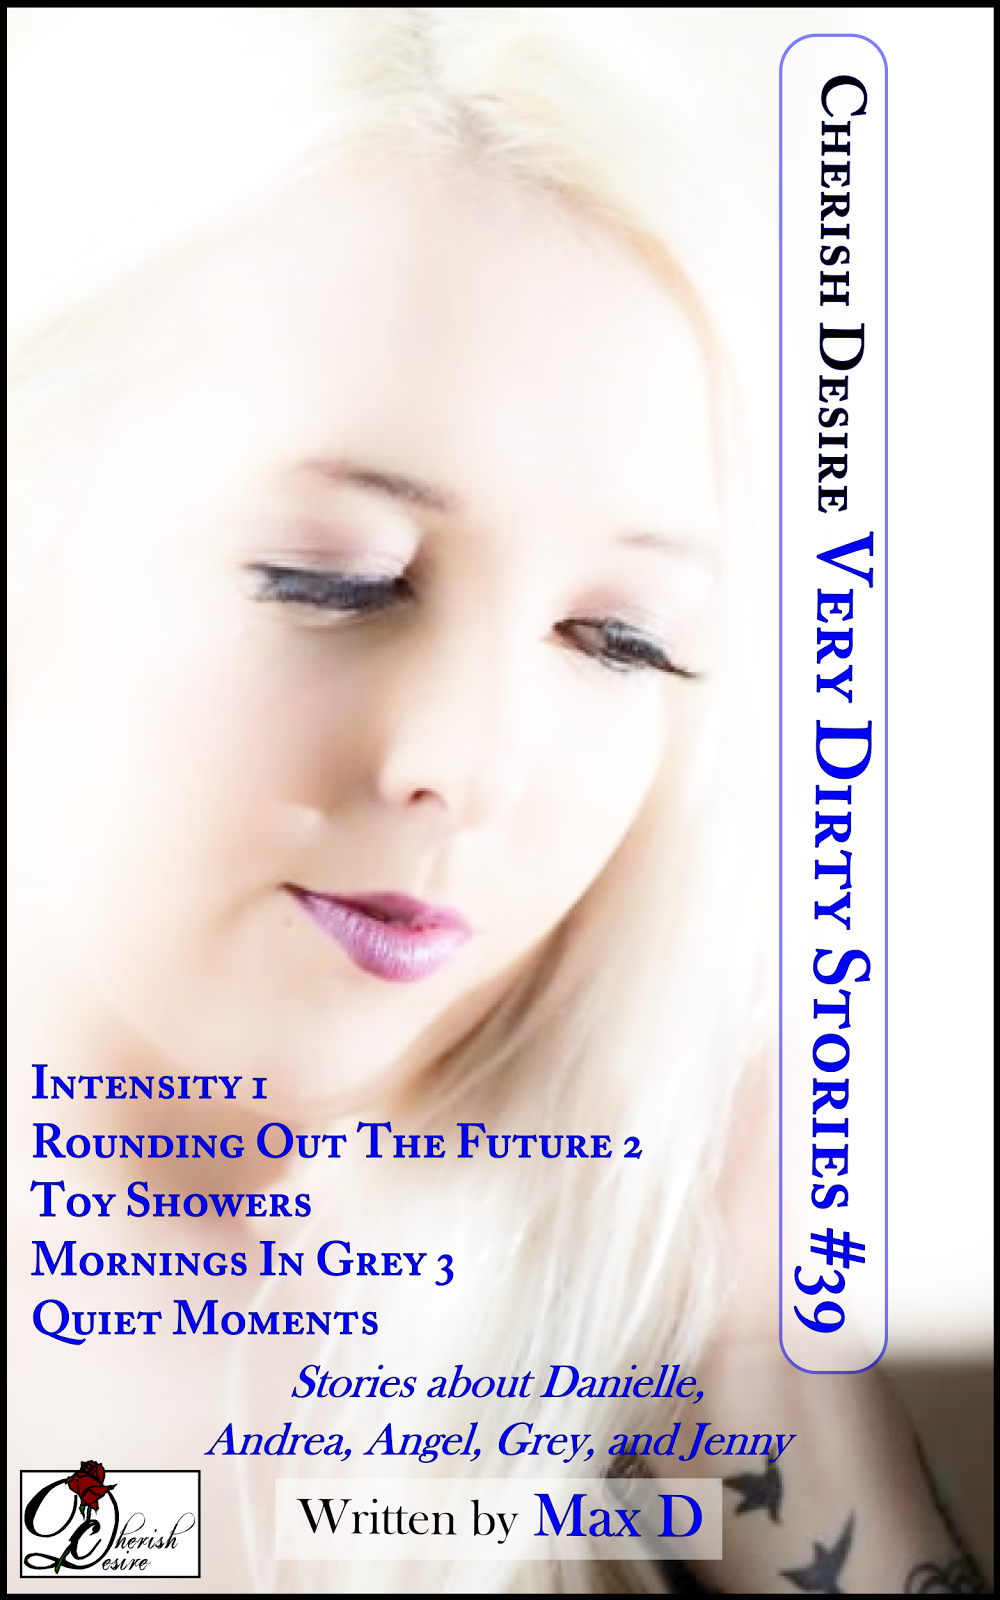 Cherish Desire: Very Dirty Stories #39, Max D, erotica